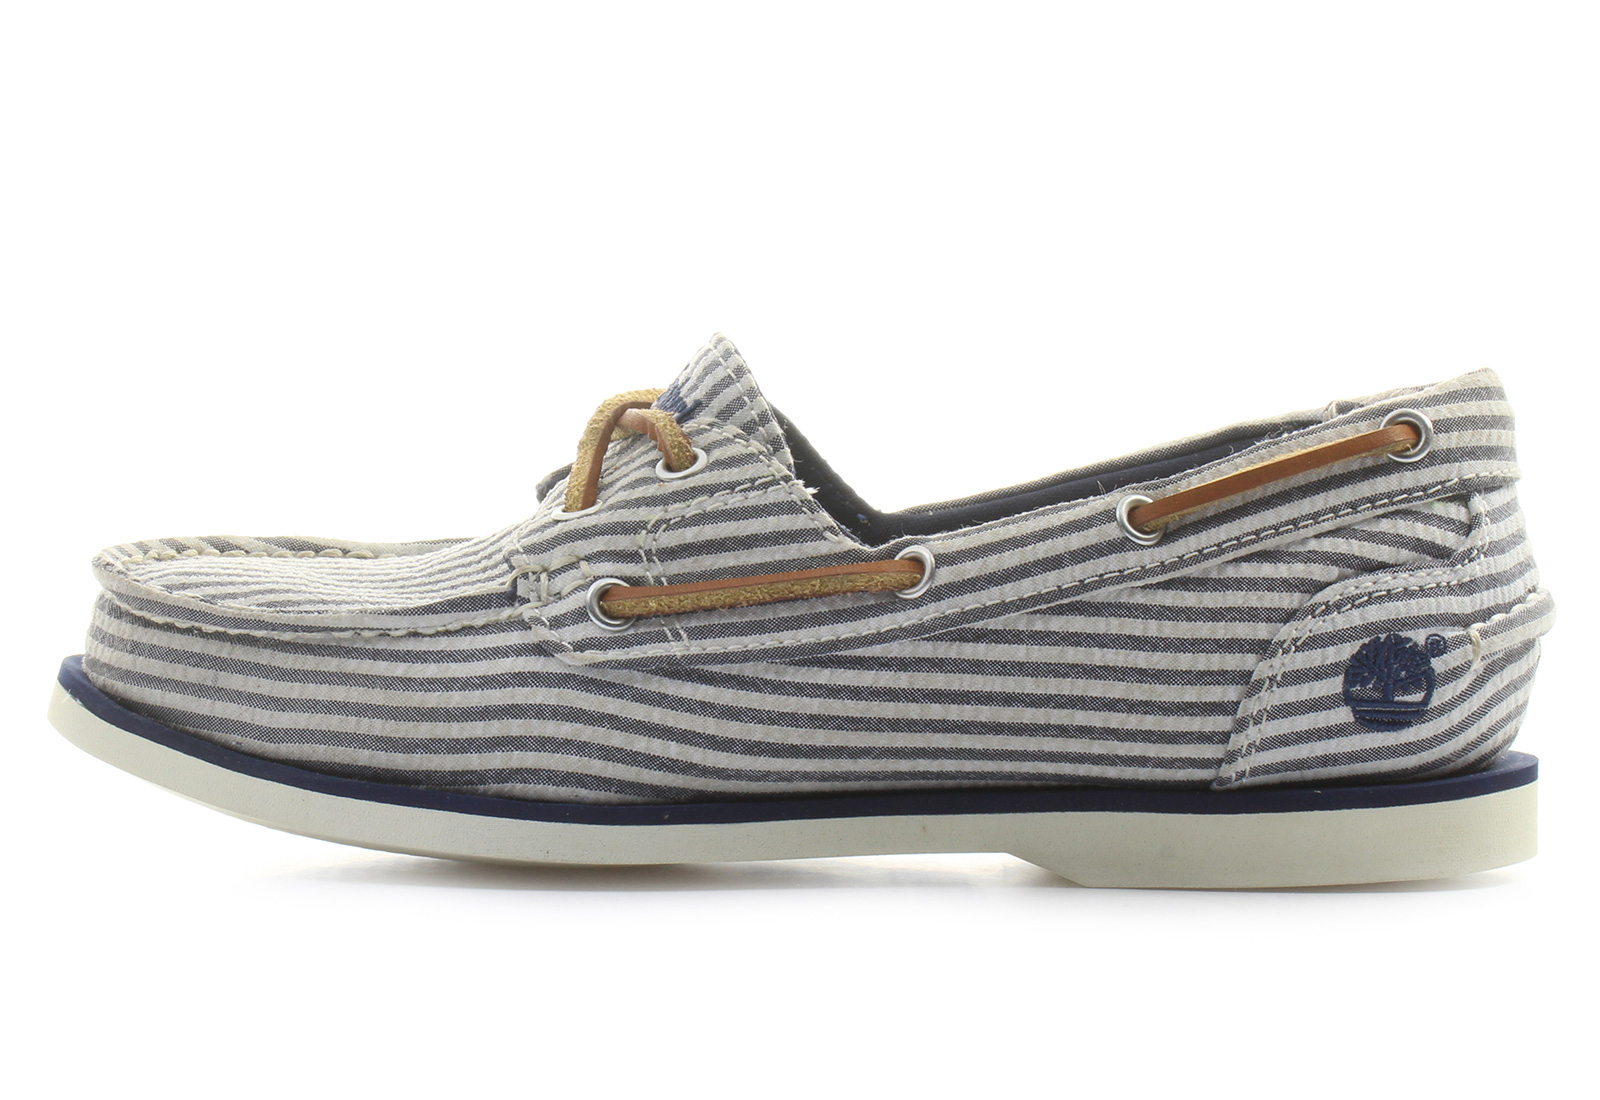 timberland shoes canvas boat 8910a shop